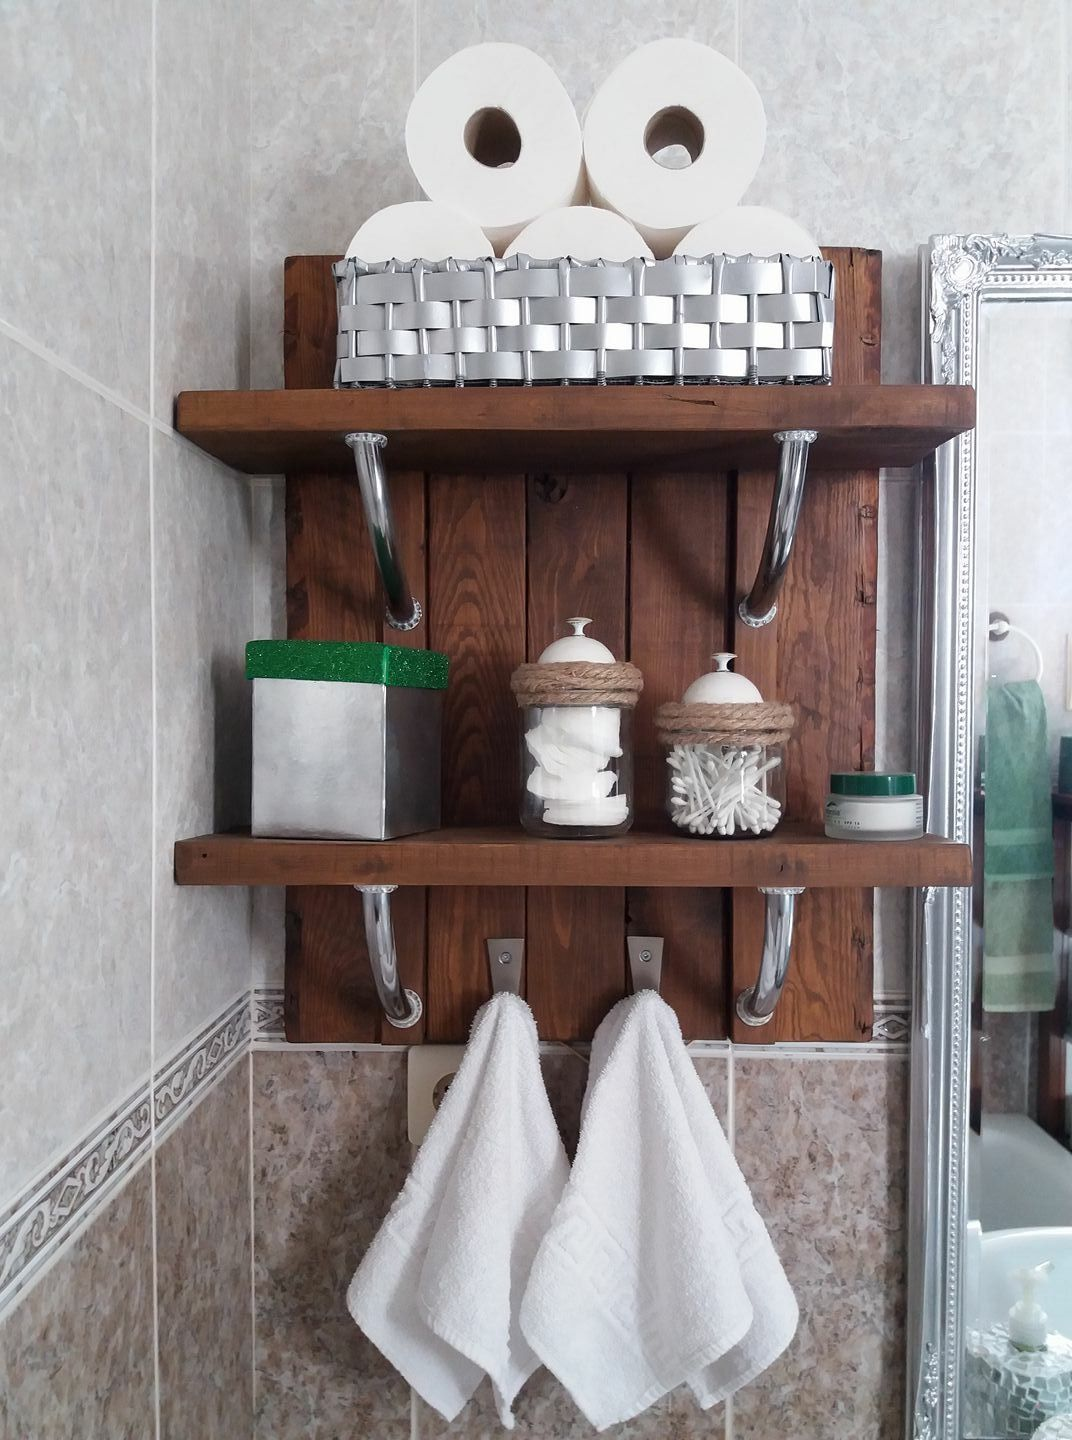 Pin by Lily Leon on Bathroom | Decor, Toilet paper, Paper